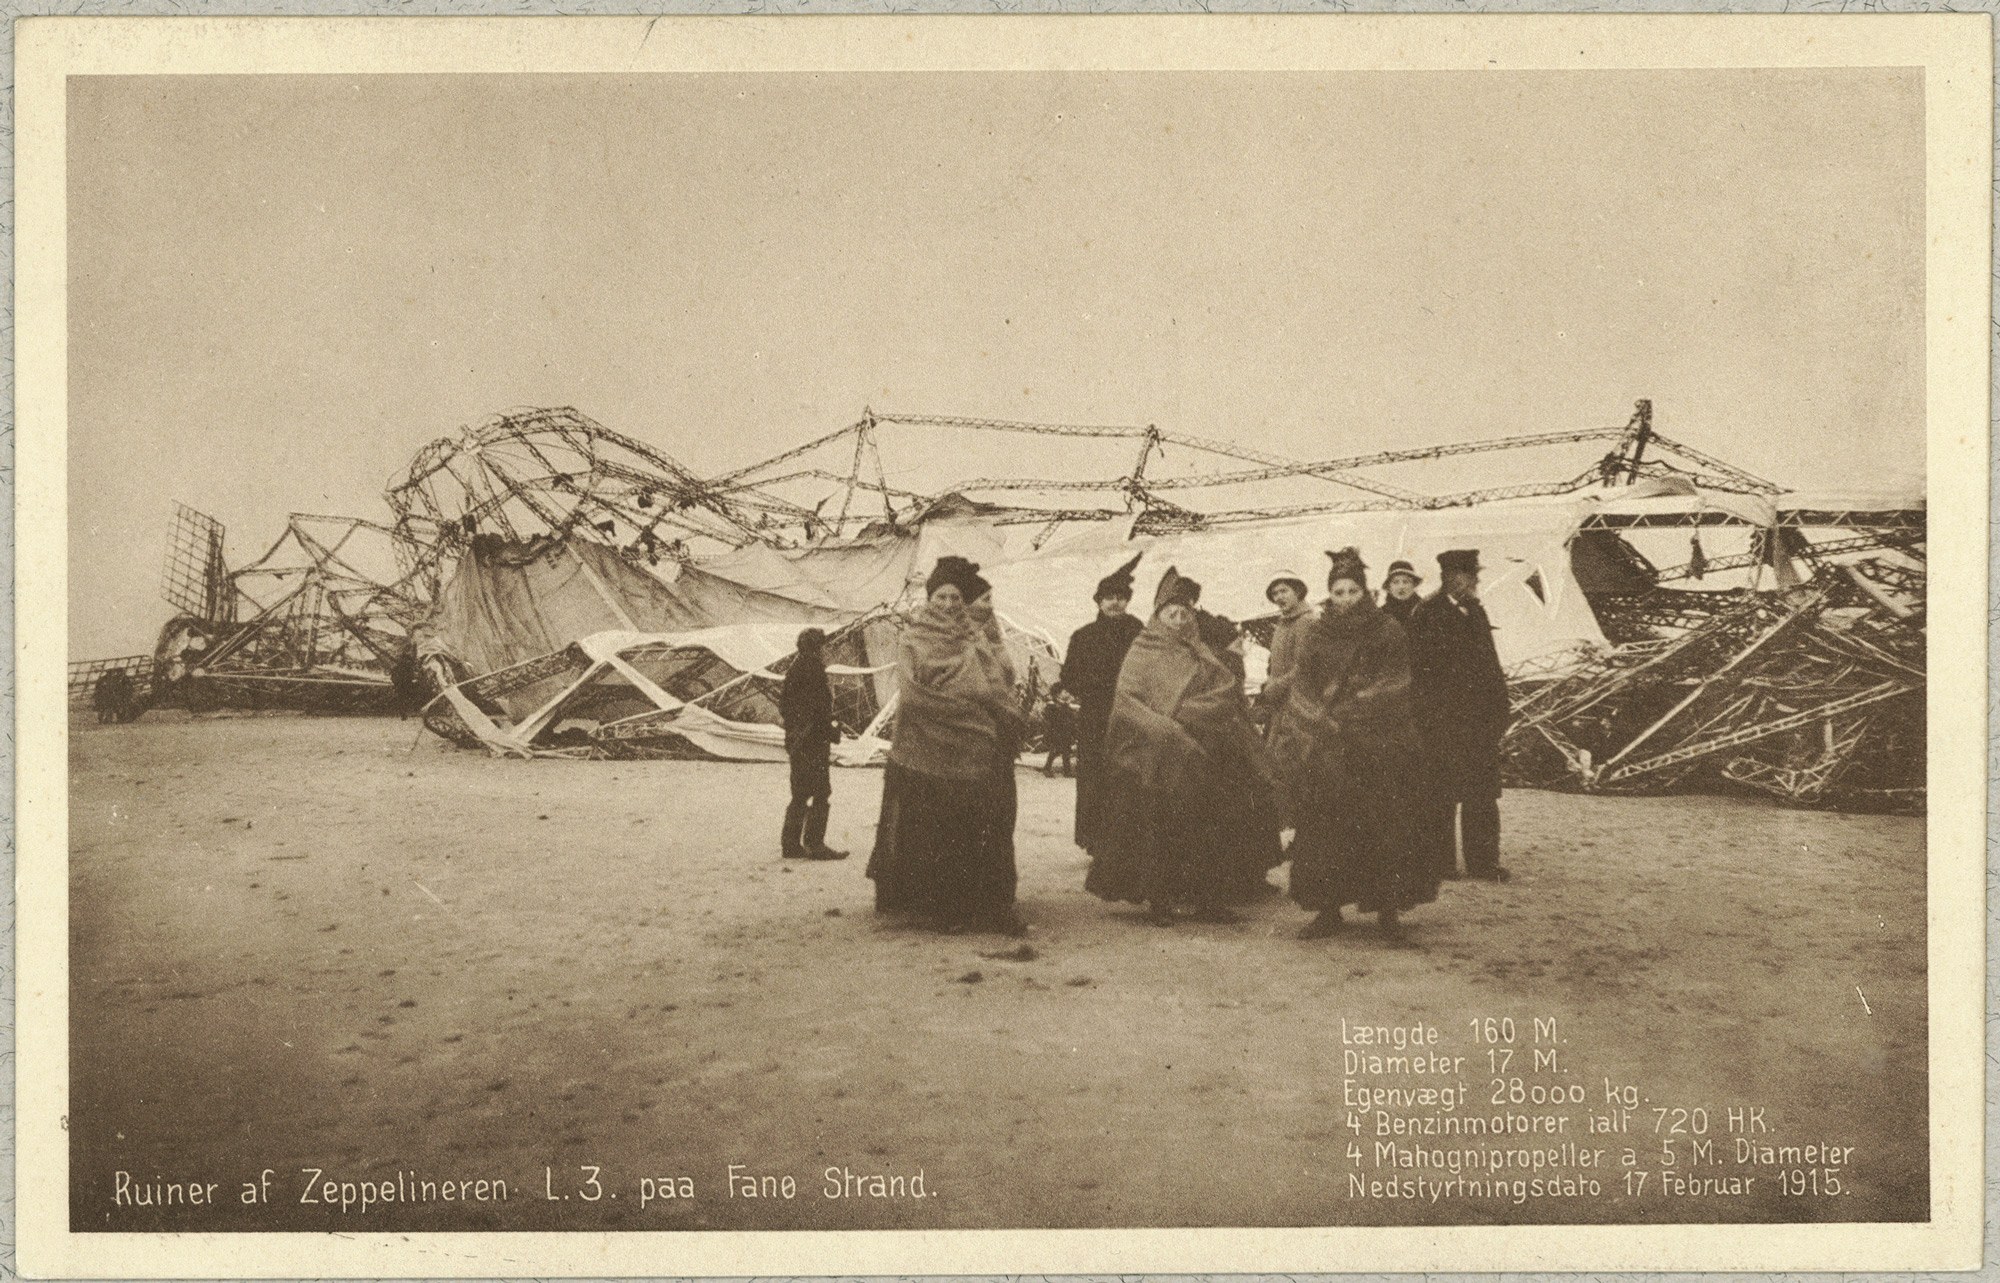 Postcard of  German zeppelin what crashed on Fanø